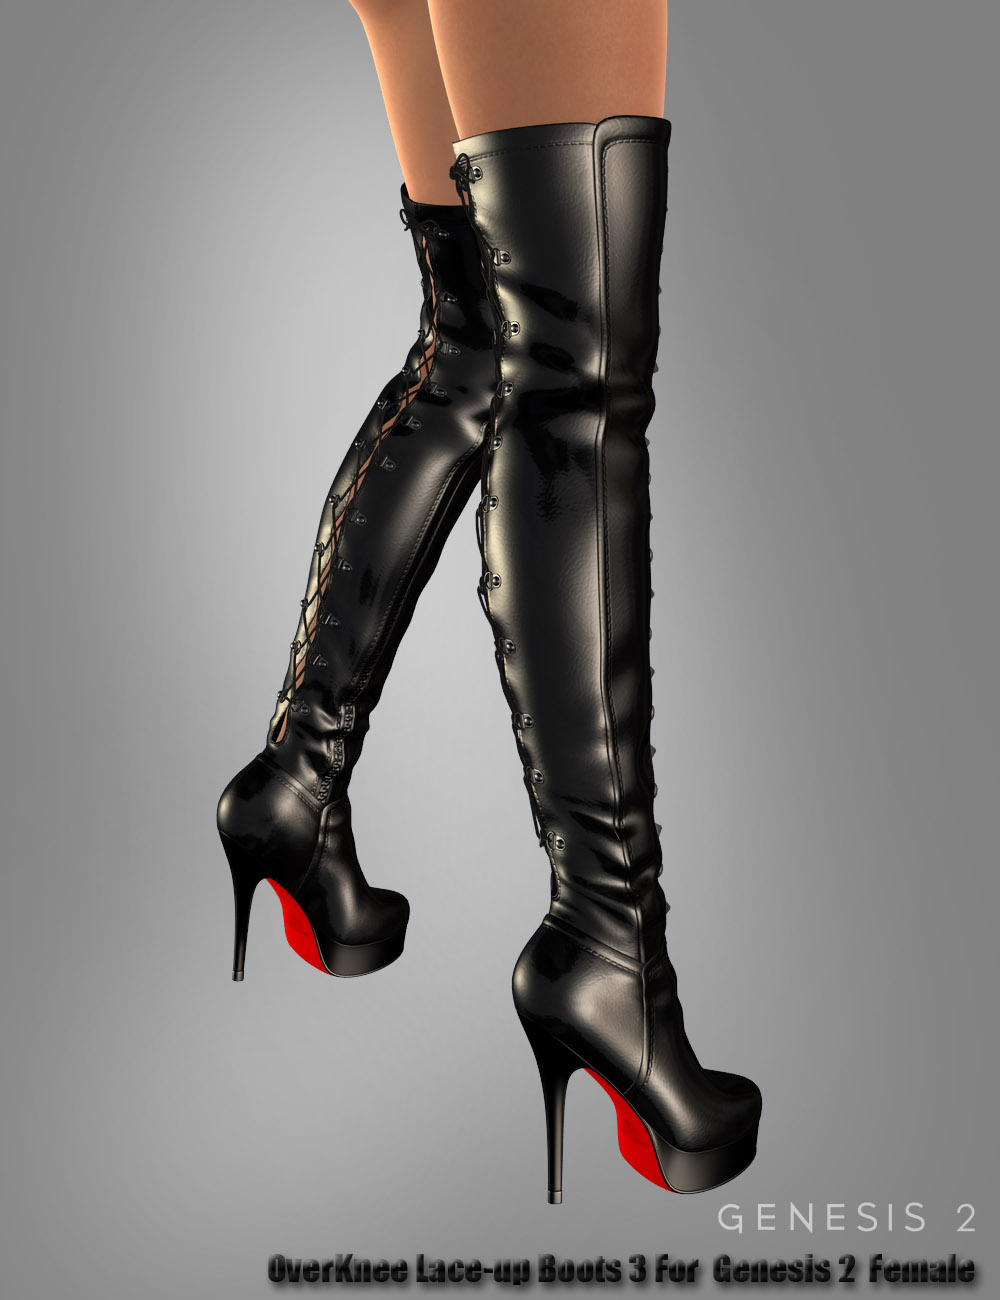 OverKnee Lace-up Boots 3 For Genesis 2 Female(s) by: dx30, 3D Models by Daz 3D